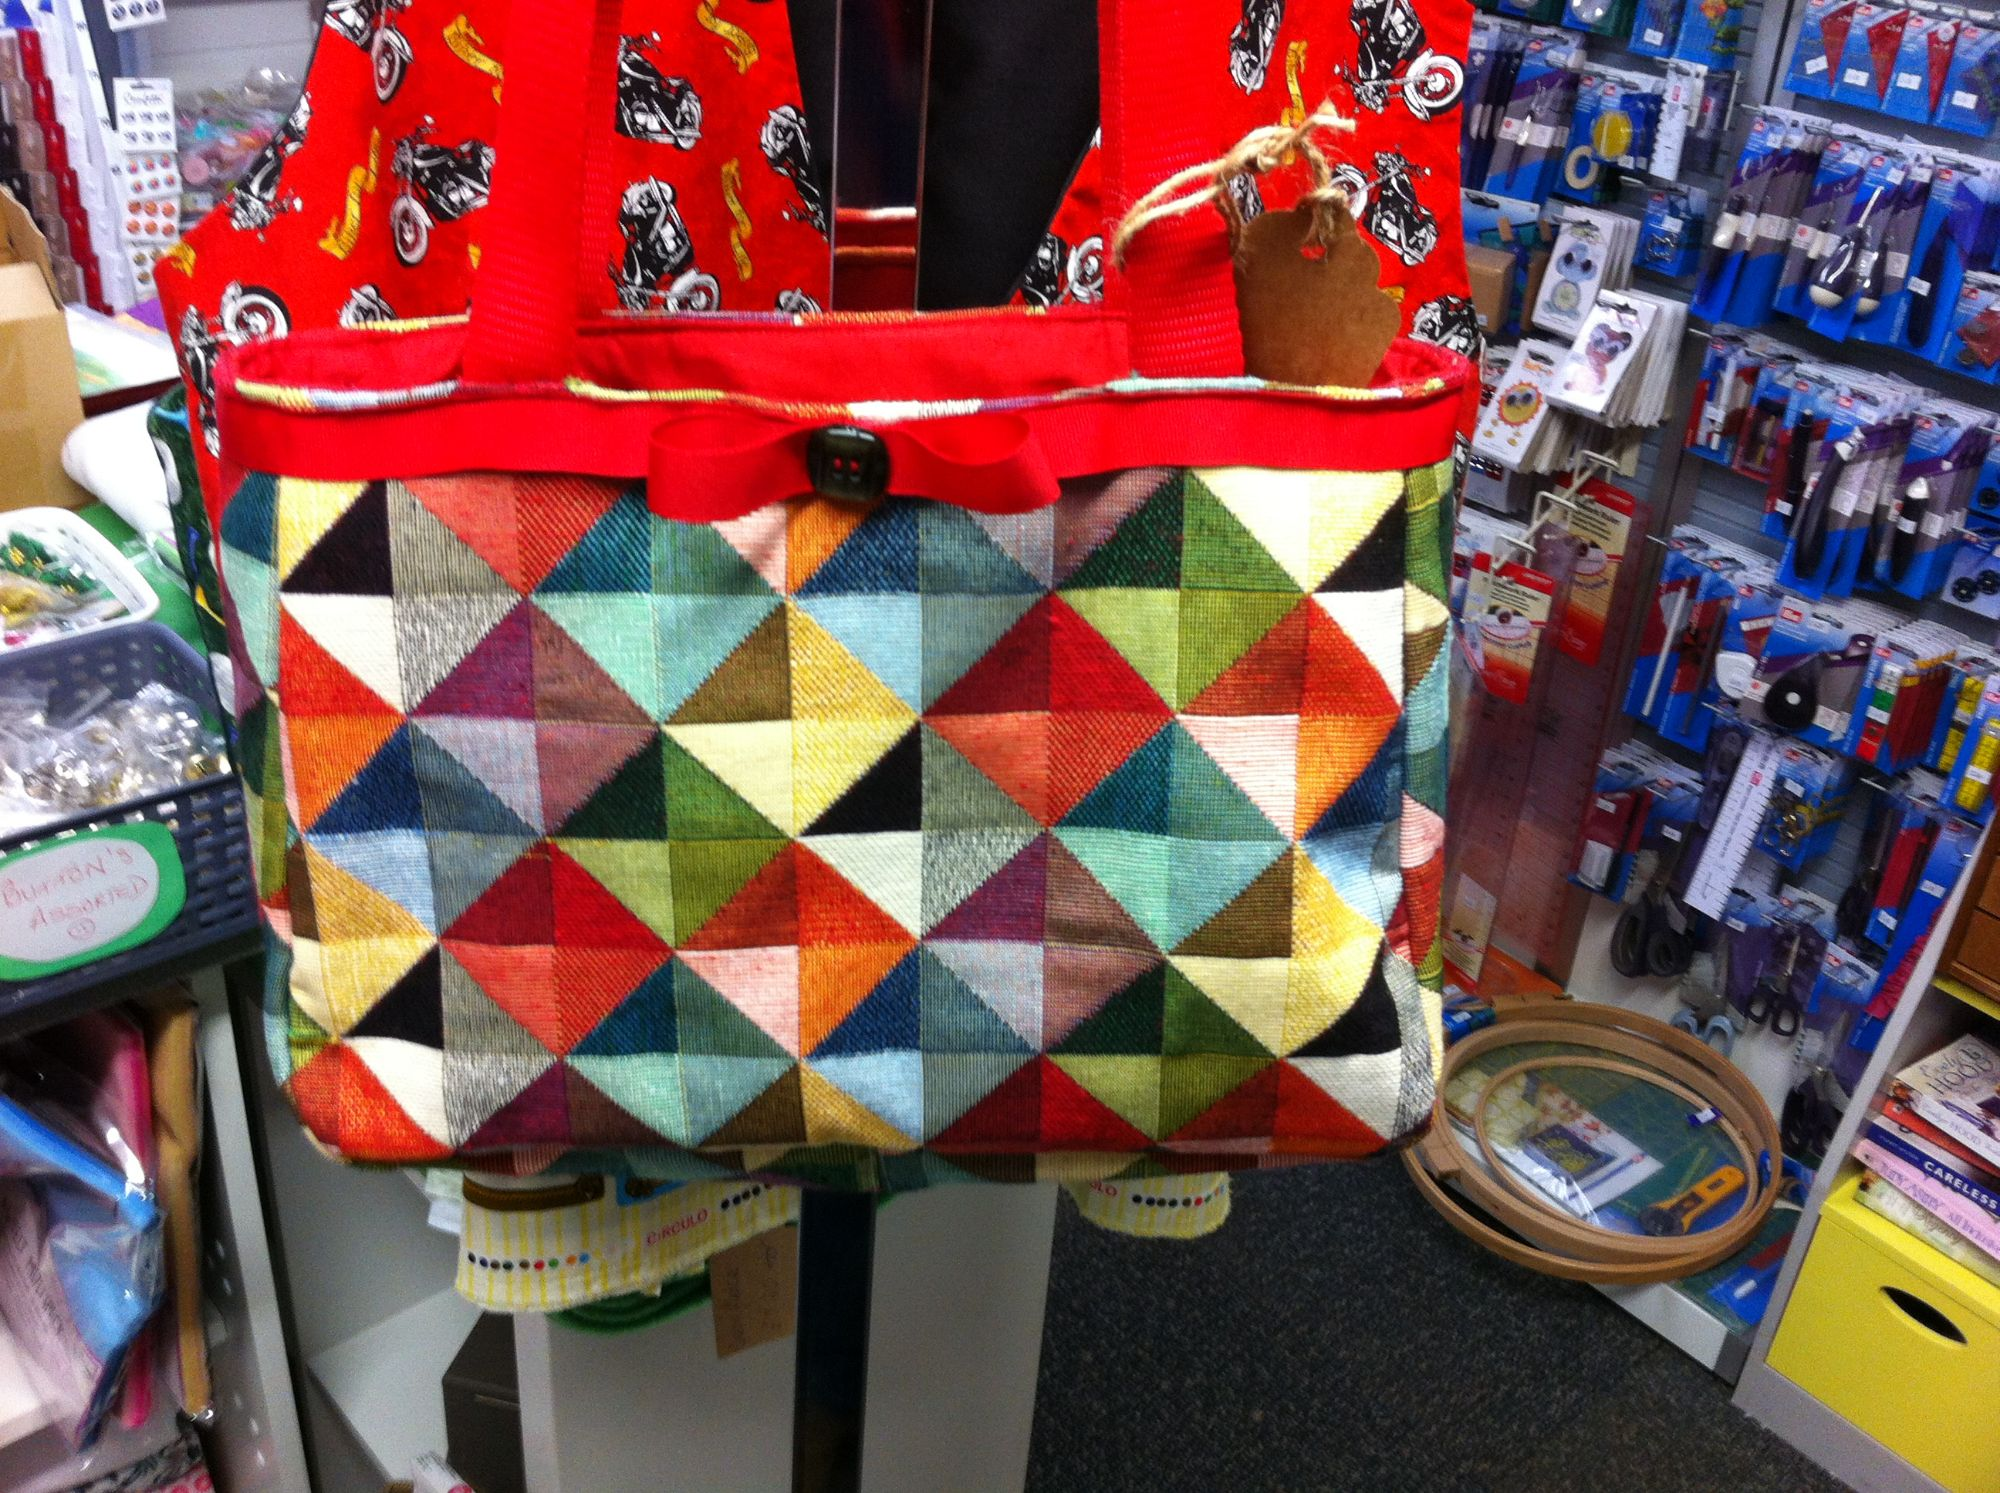 Debby's Patch retro bag